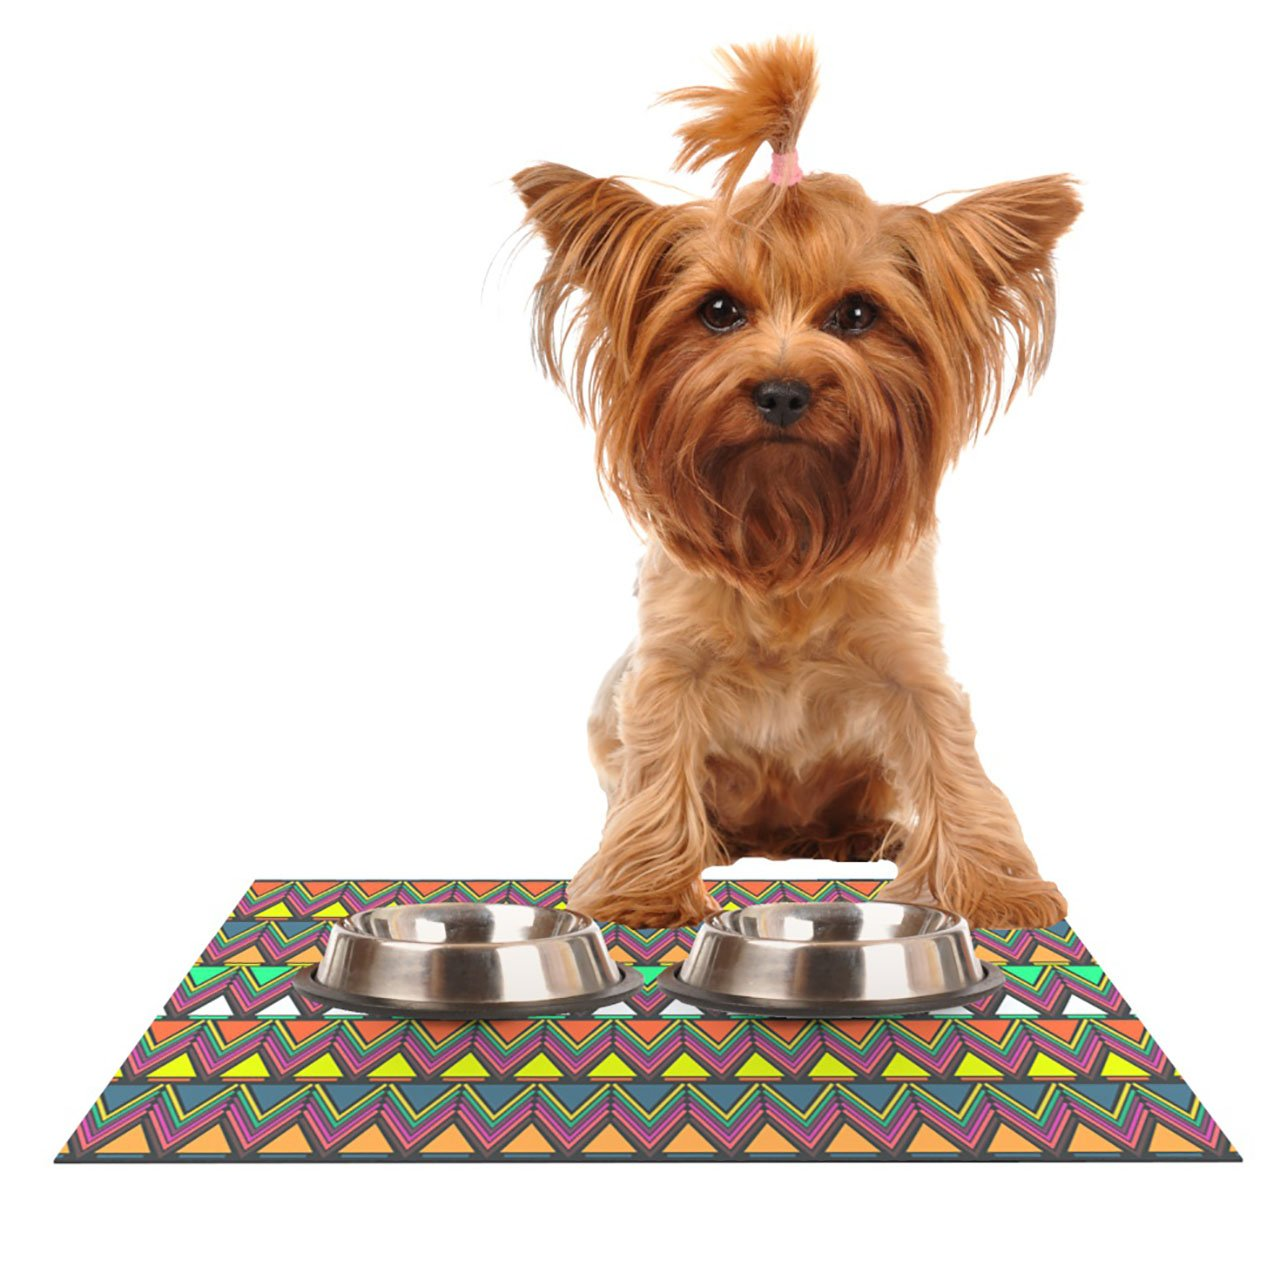 Kess InHouse Nandita Singh Pattern Play  Rainbow Chevron Pet Bowl Placemat for Dog and Cat Feeding Mat, 24 by 15-Inch